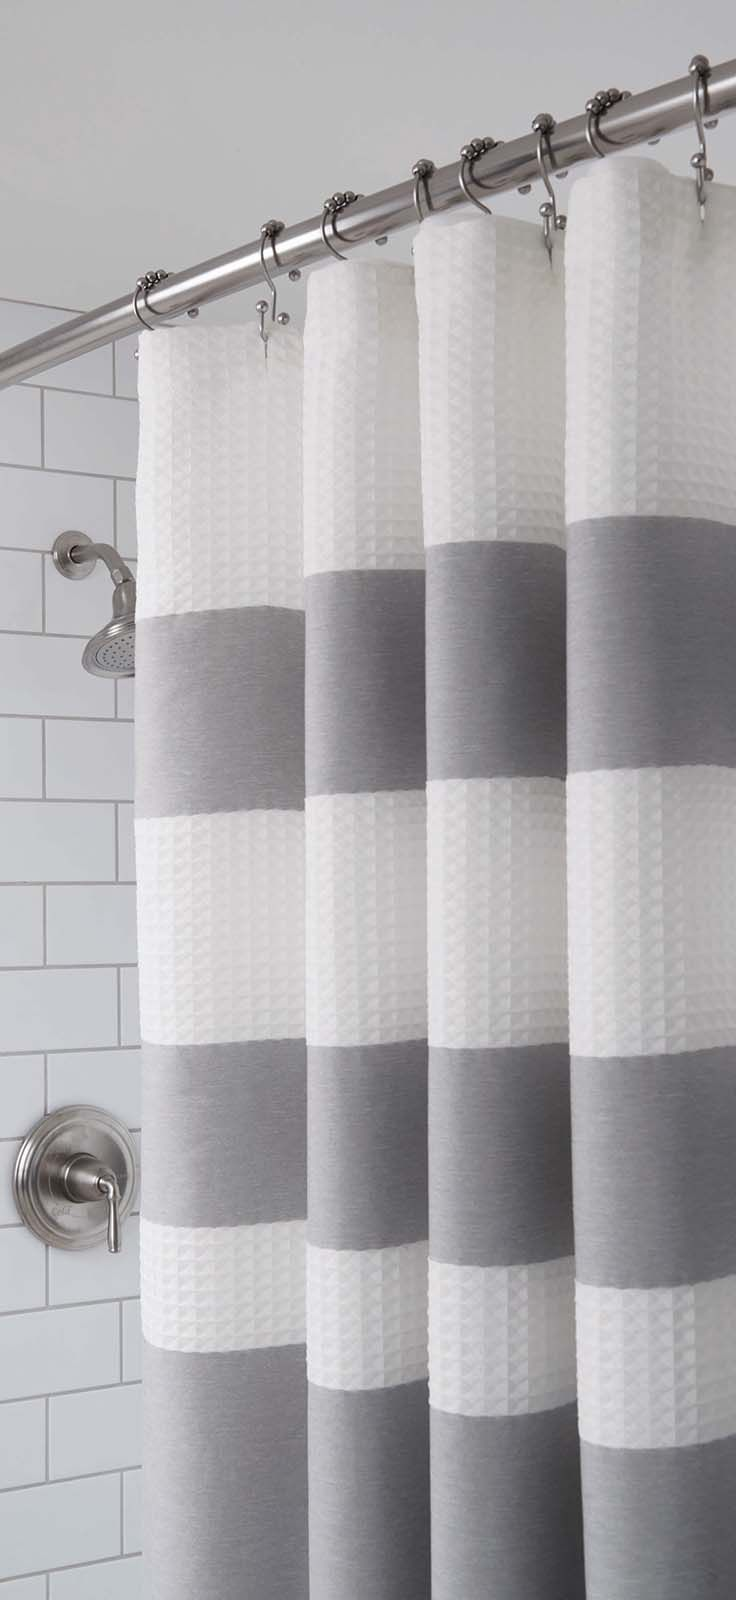 65 Best Images About Boost Your Bathroom On Pinterest